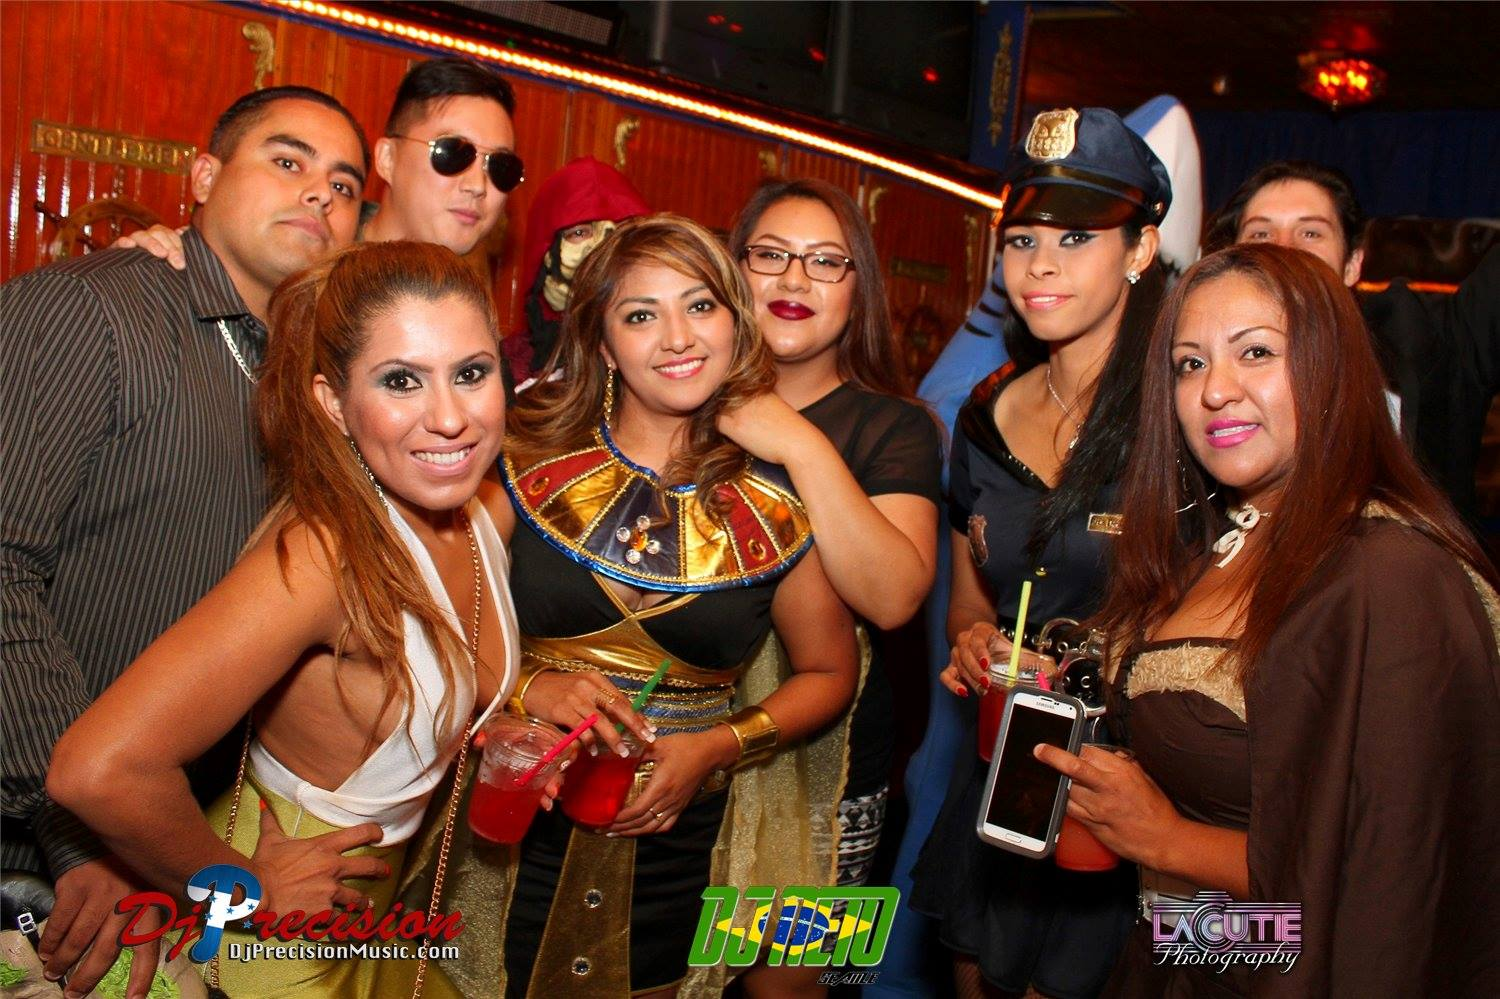 halloween latin boat party 2018 tickets, sat, oct 27, 2018 at 9:30